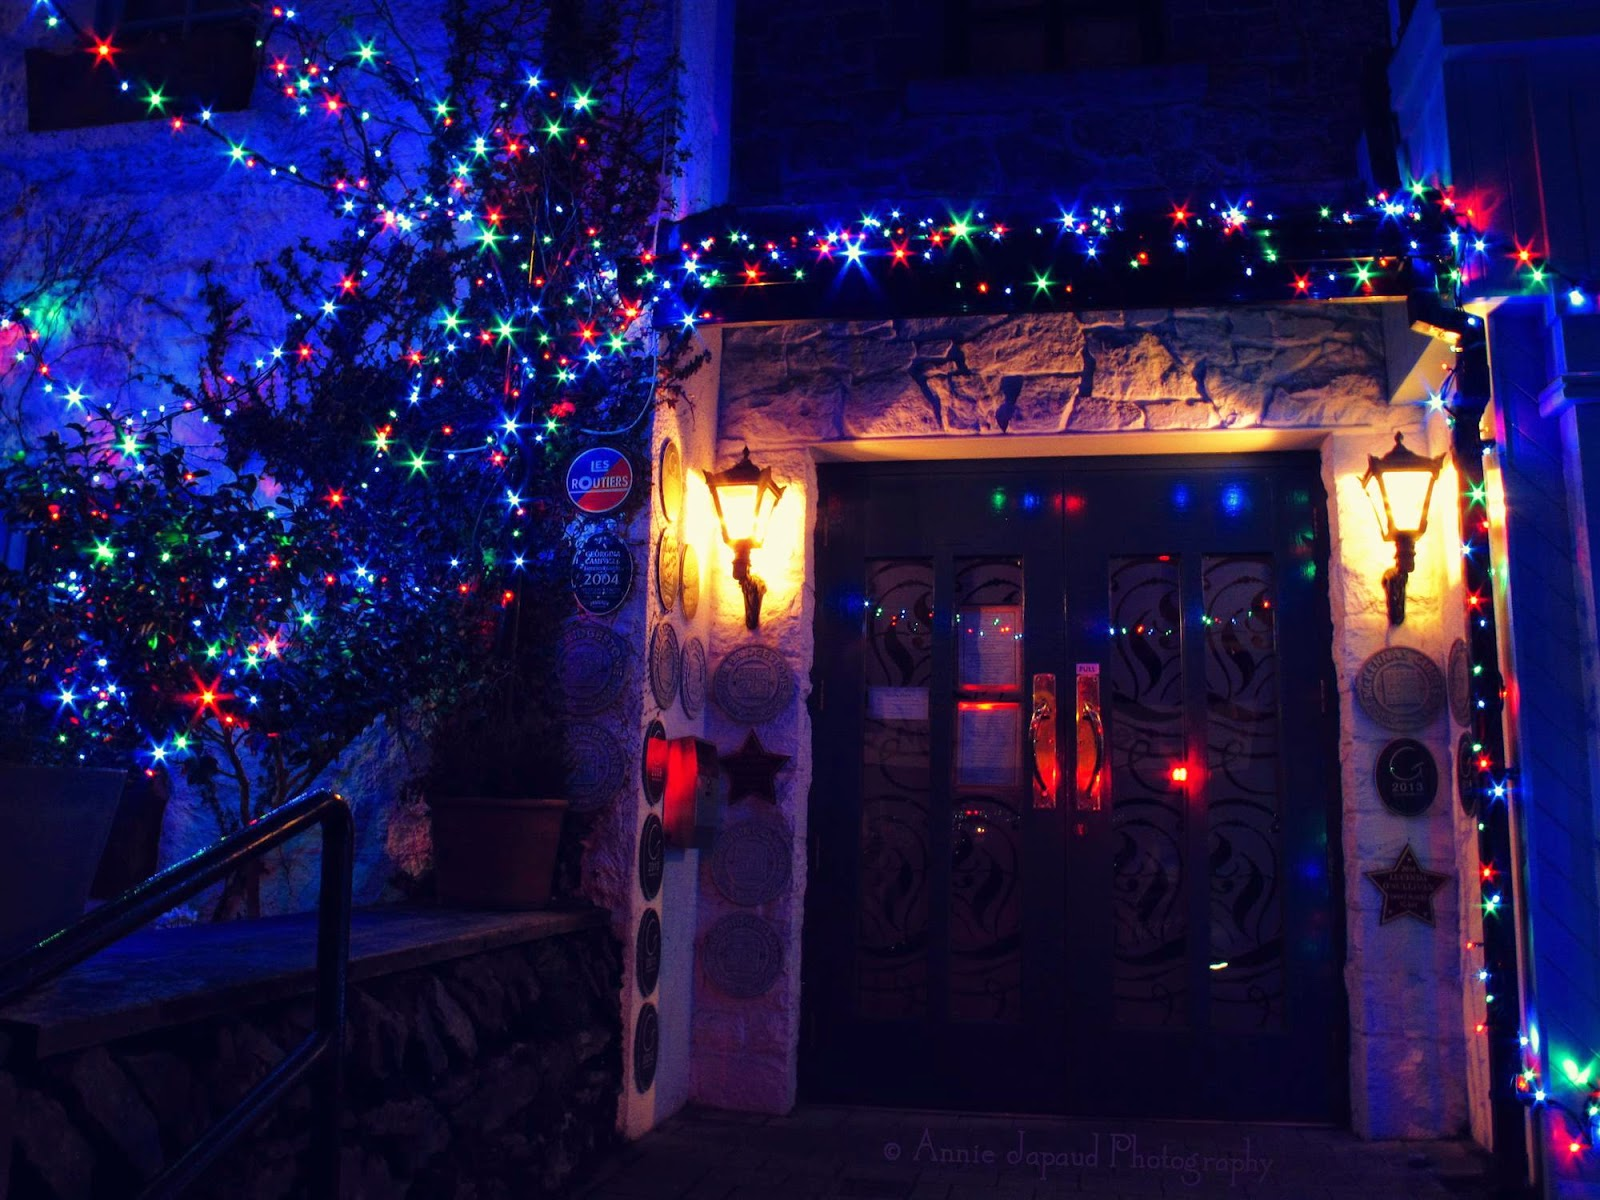 the entrance of the White Gable surrounded with Christmas Lights